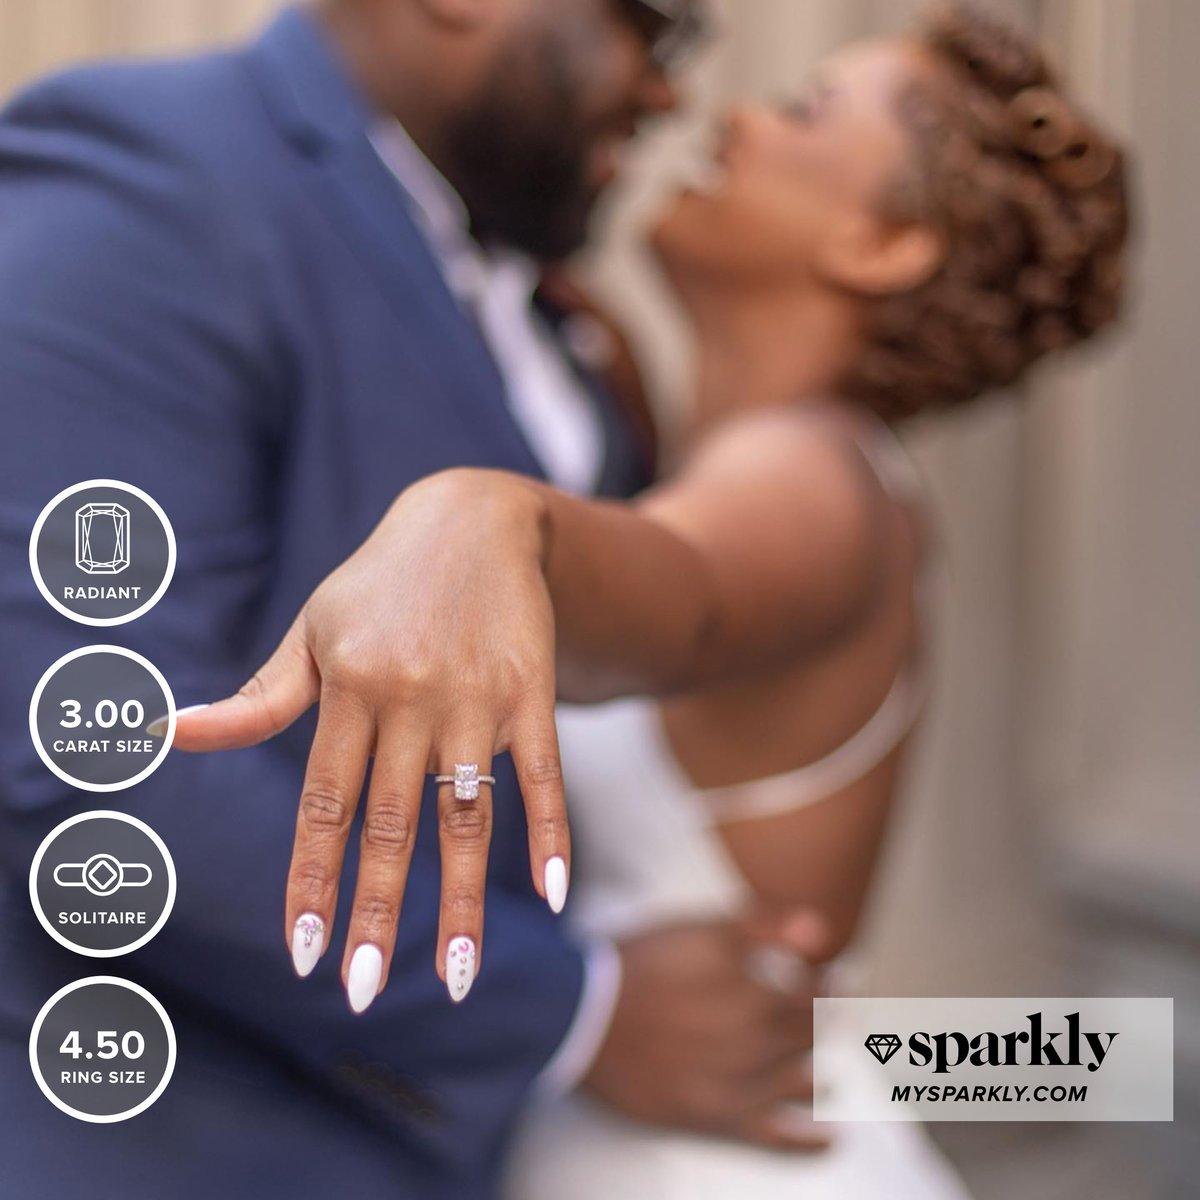 """She said, """"YASSS!"""" I mean who wouldn't with a ring like that?!  •  DM us for expert advice regarding specs and pricing • COMMENT your absolute fav ring styles    Browse more real ring styles at http://MySparkly.com #linkinbio #wifelife #ManiMonday pic.twitter.com/u8Azyz2Uqo"""